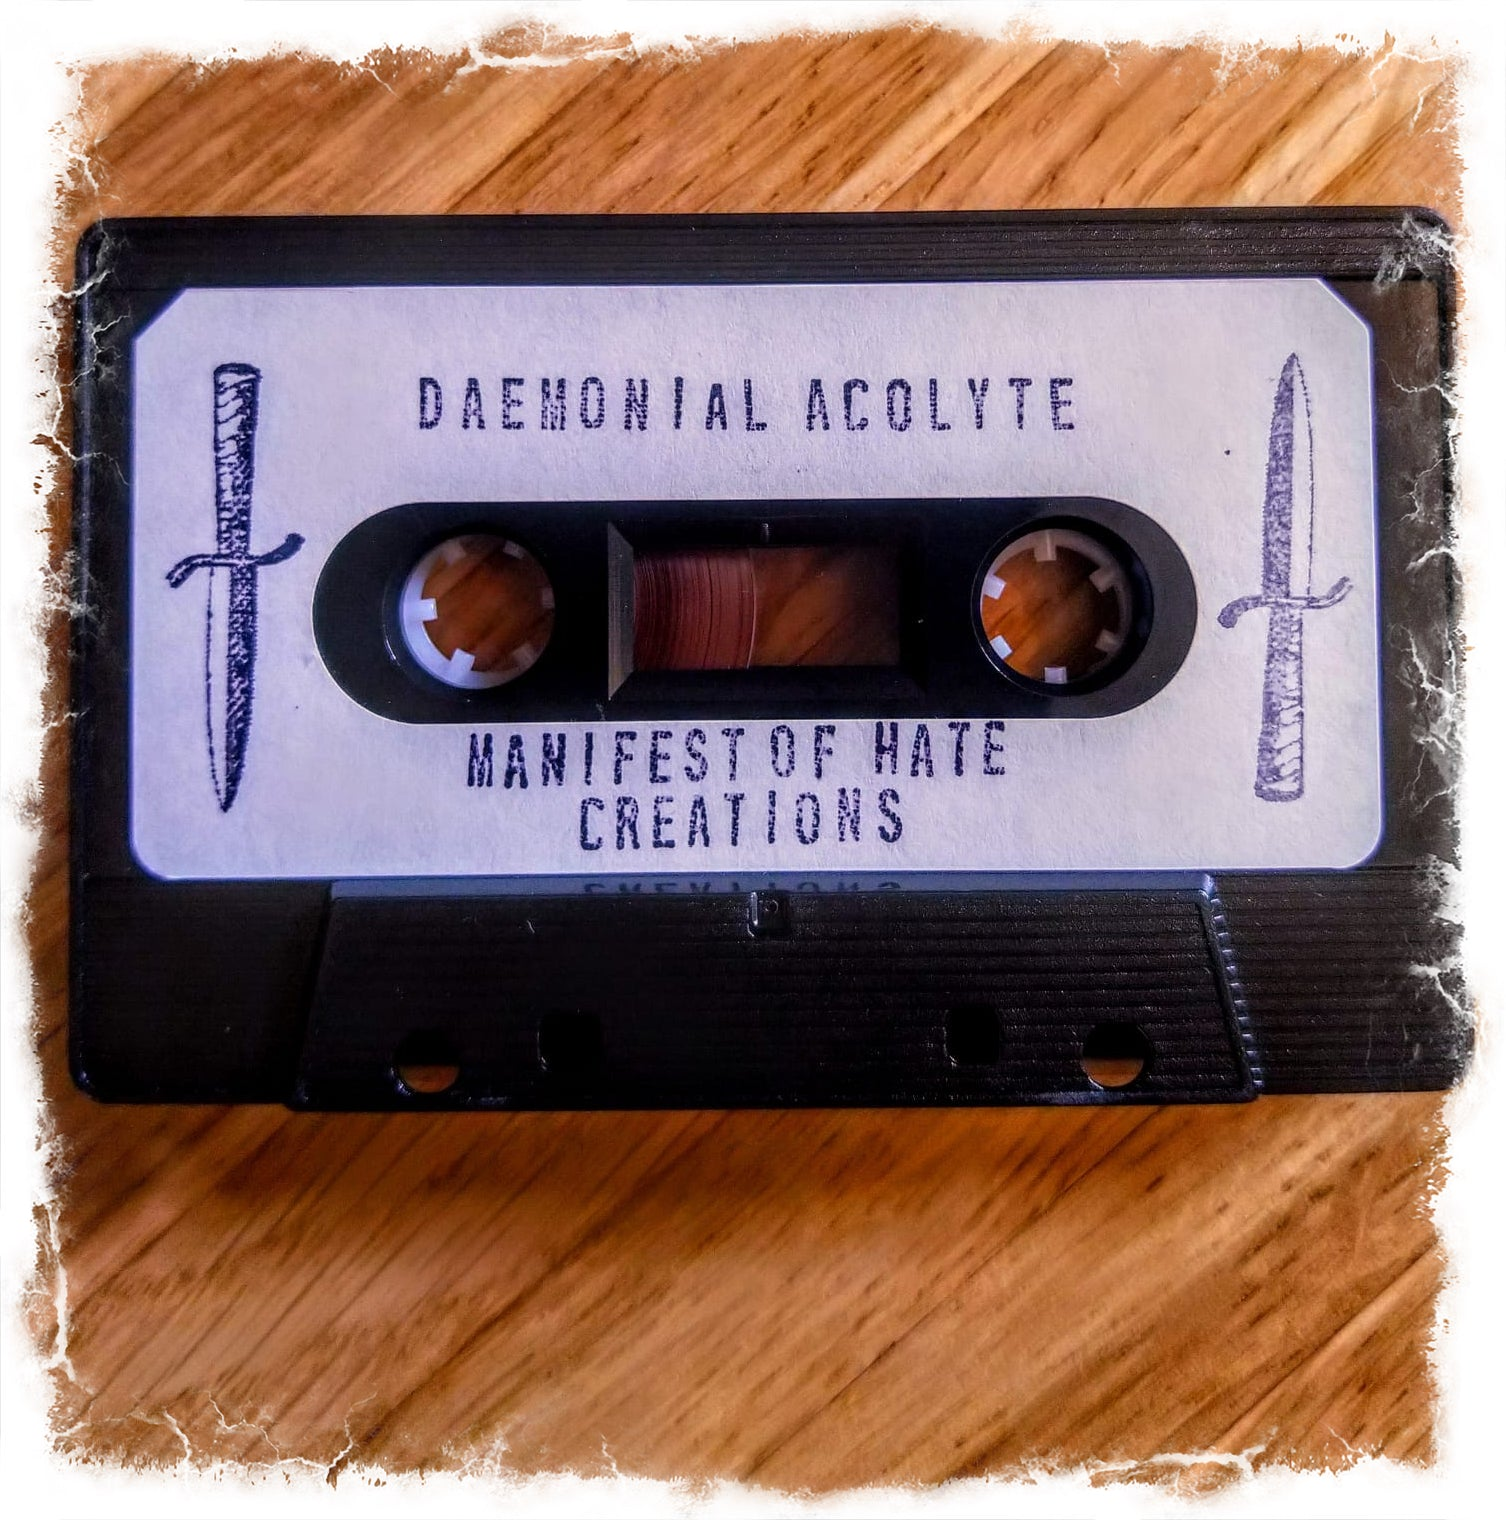 Daemonial Acolyte – Chromite Veiled Shrine TAPE